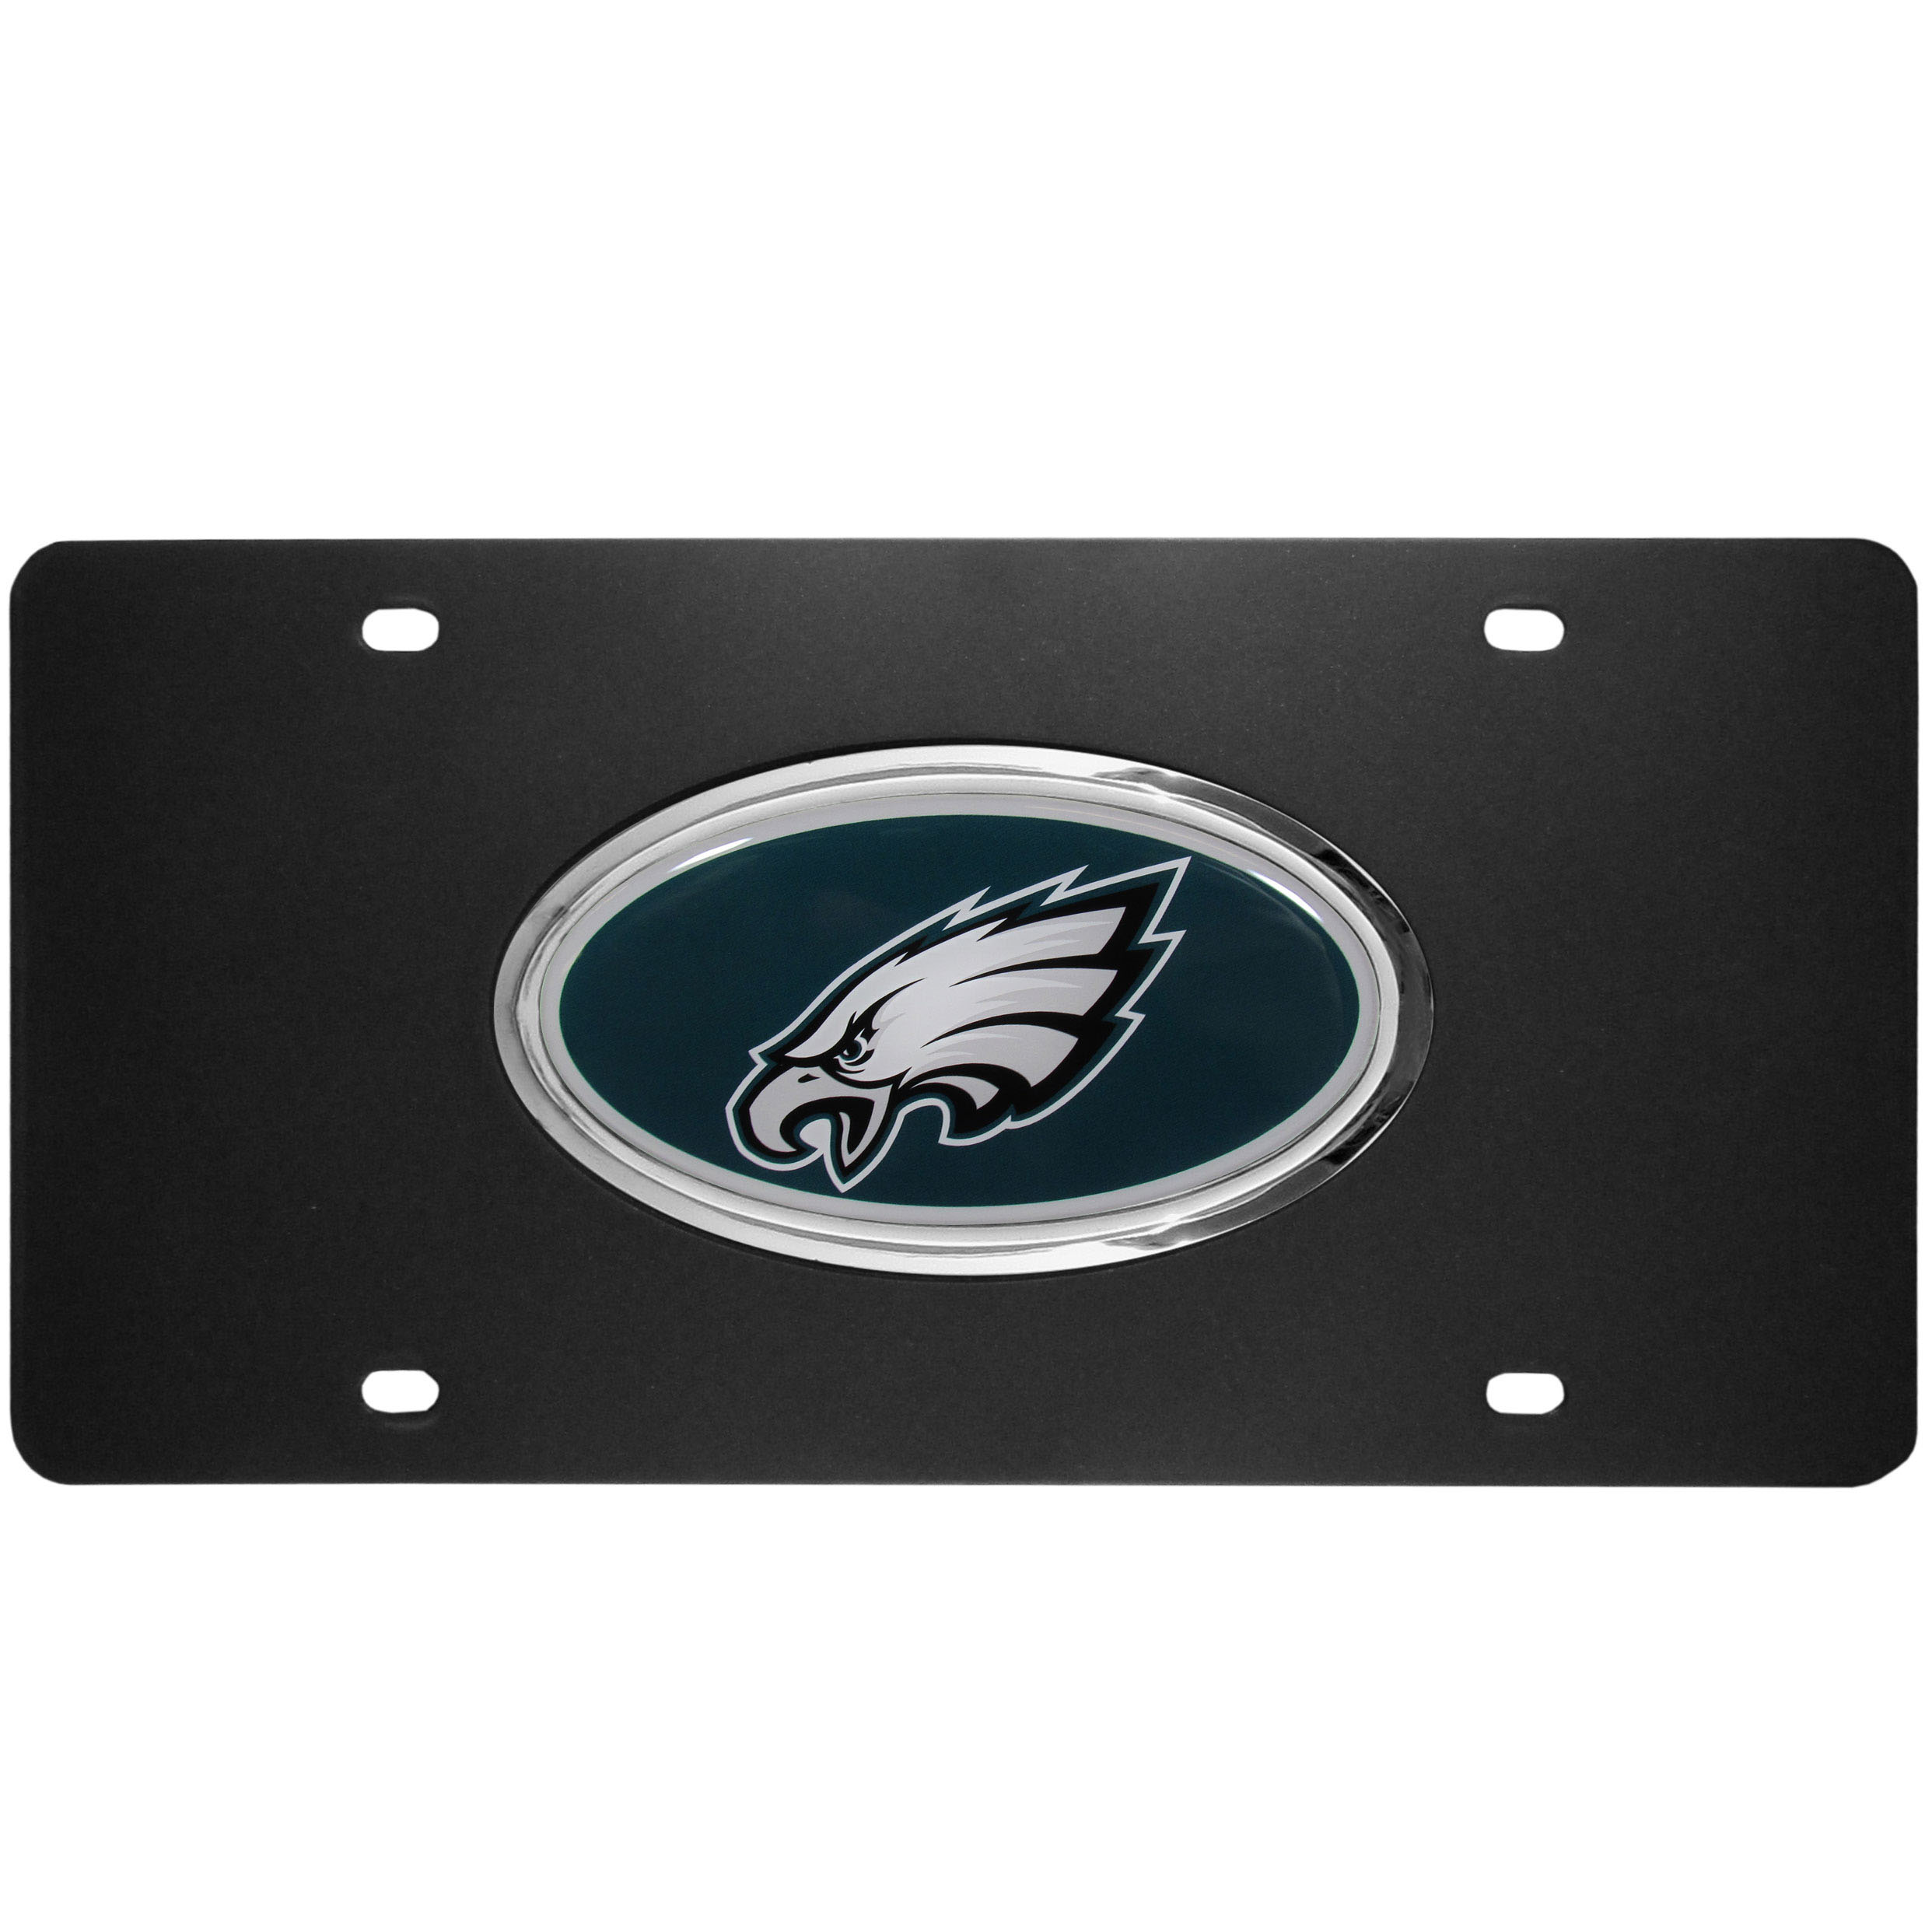 Philadelphia Eagles Acrylic License Plate - Our Philadelphia Eagles acrylic license plate is a step above the rest. It is made of thick, durable acrylic with a matte black finish and raised chrome saddle for the extra large team emblem.